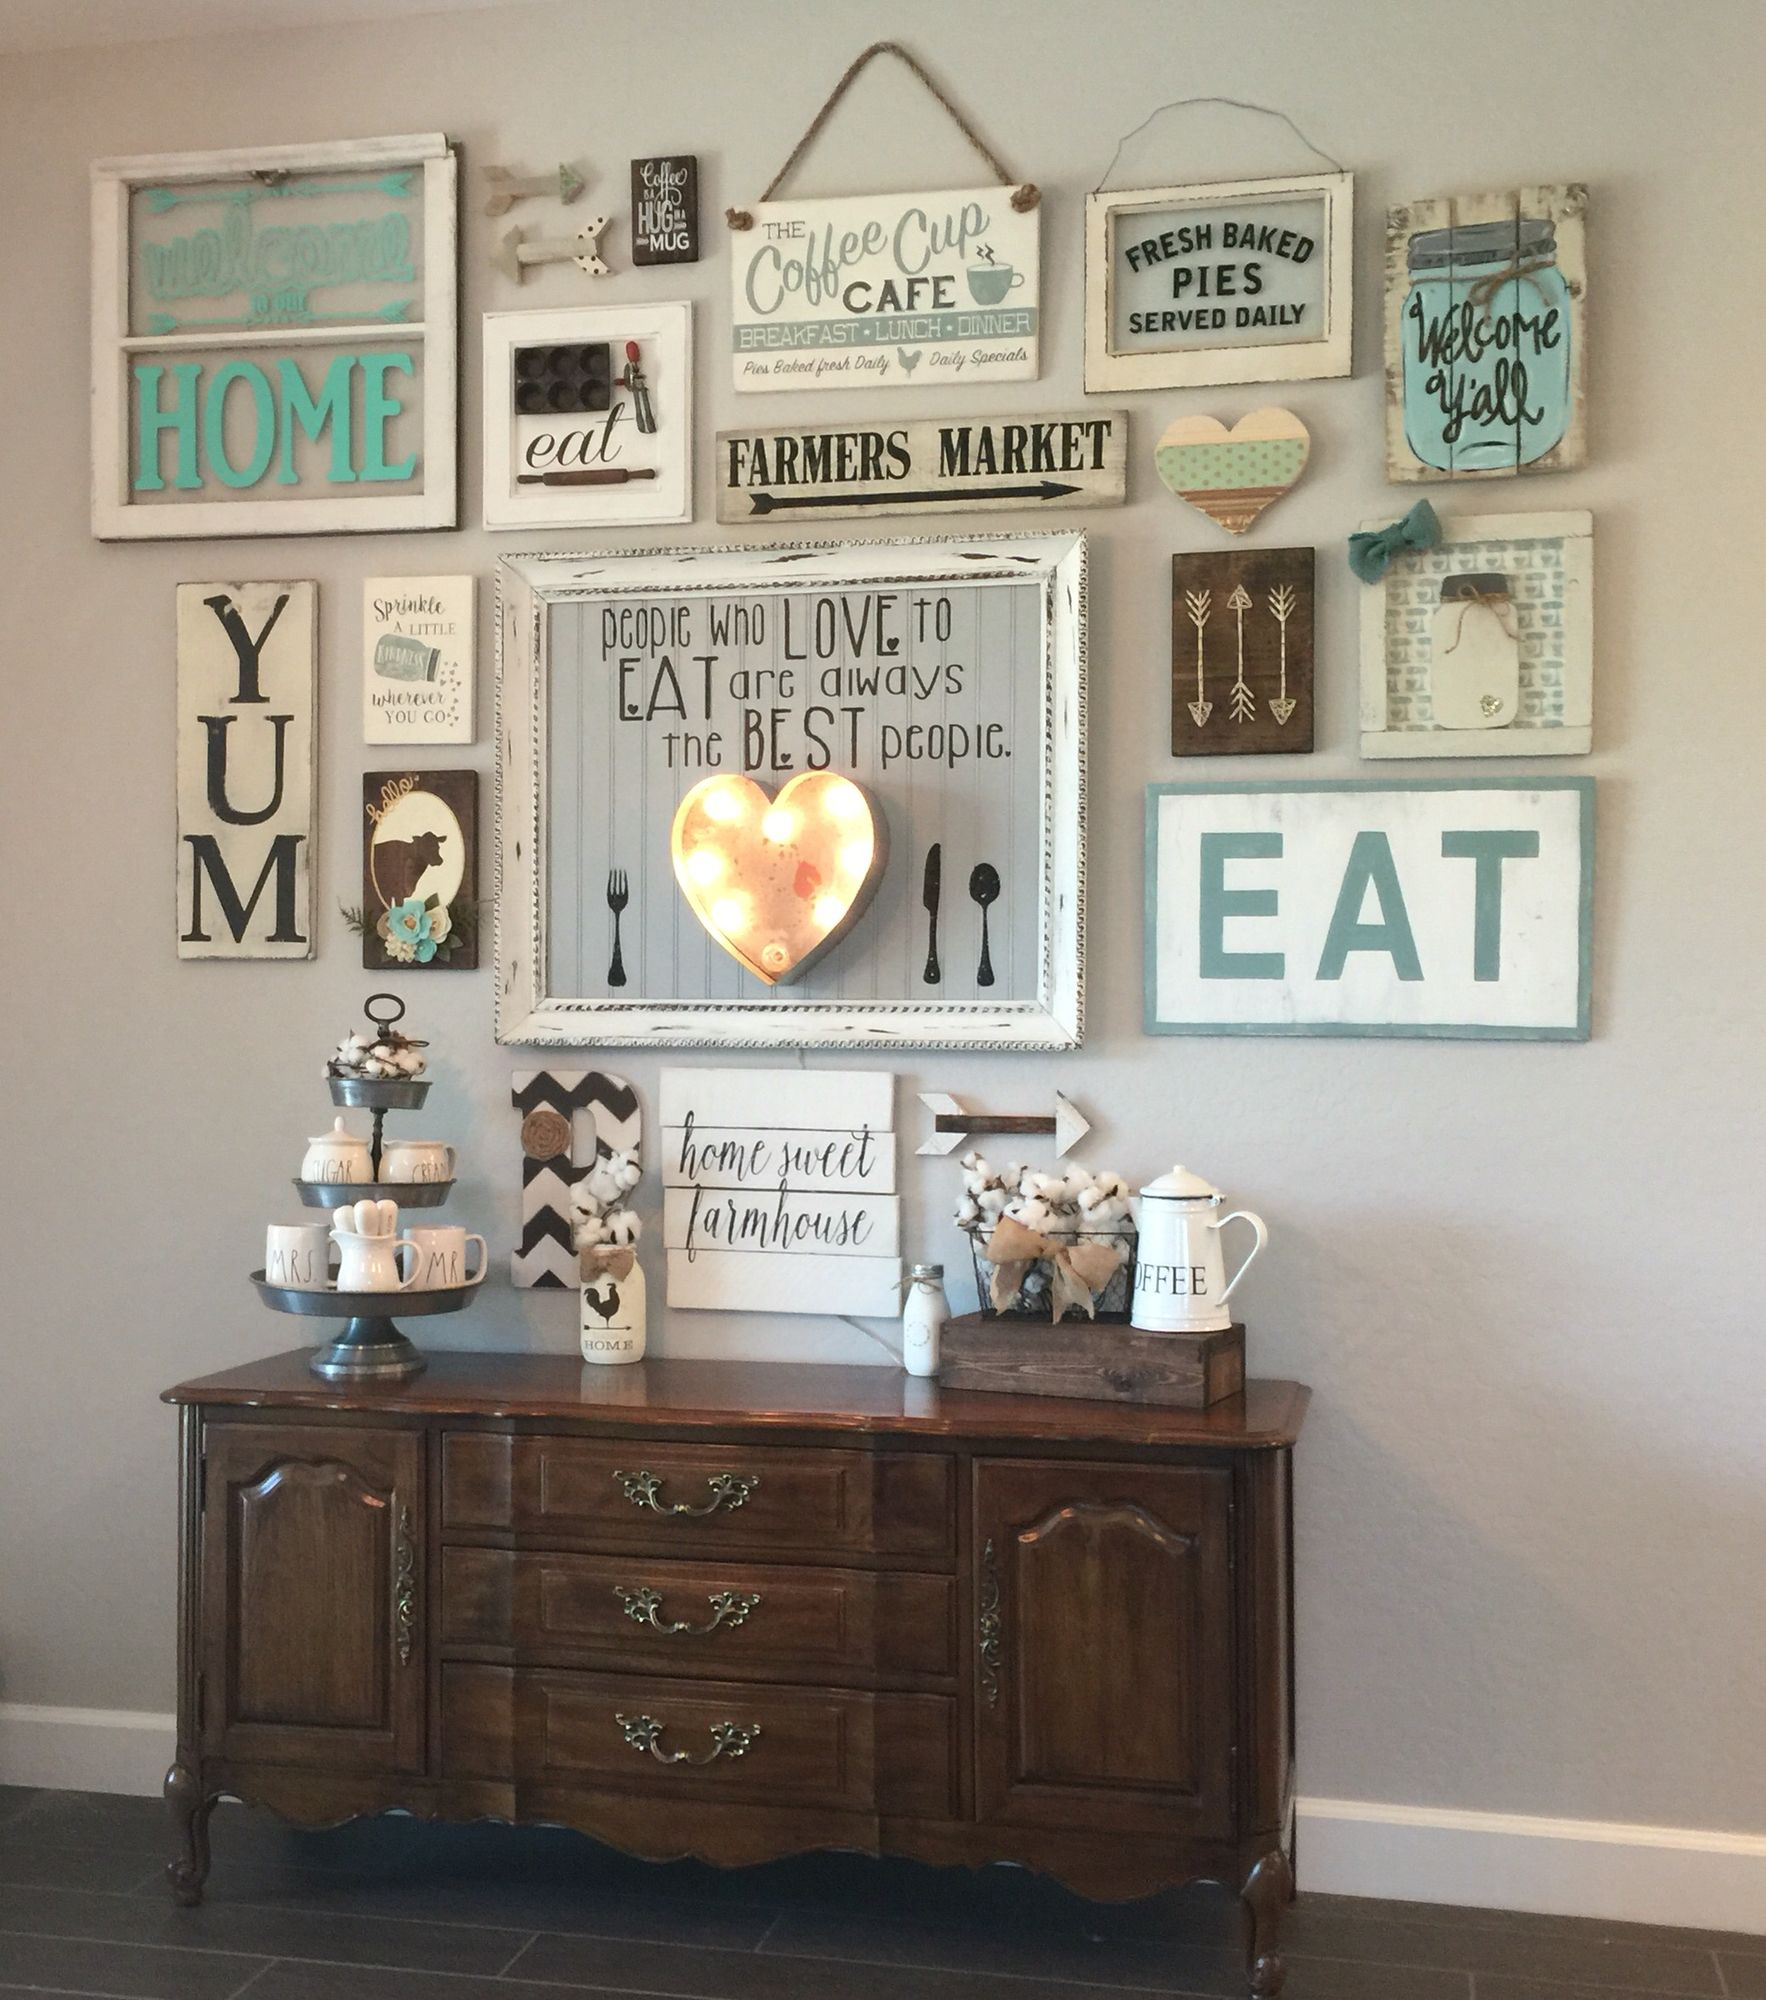 Country Kitchen New Hope: My Gallery Wall In Our Kitchen. I'm @colewifey On IG